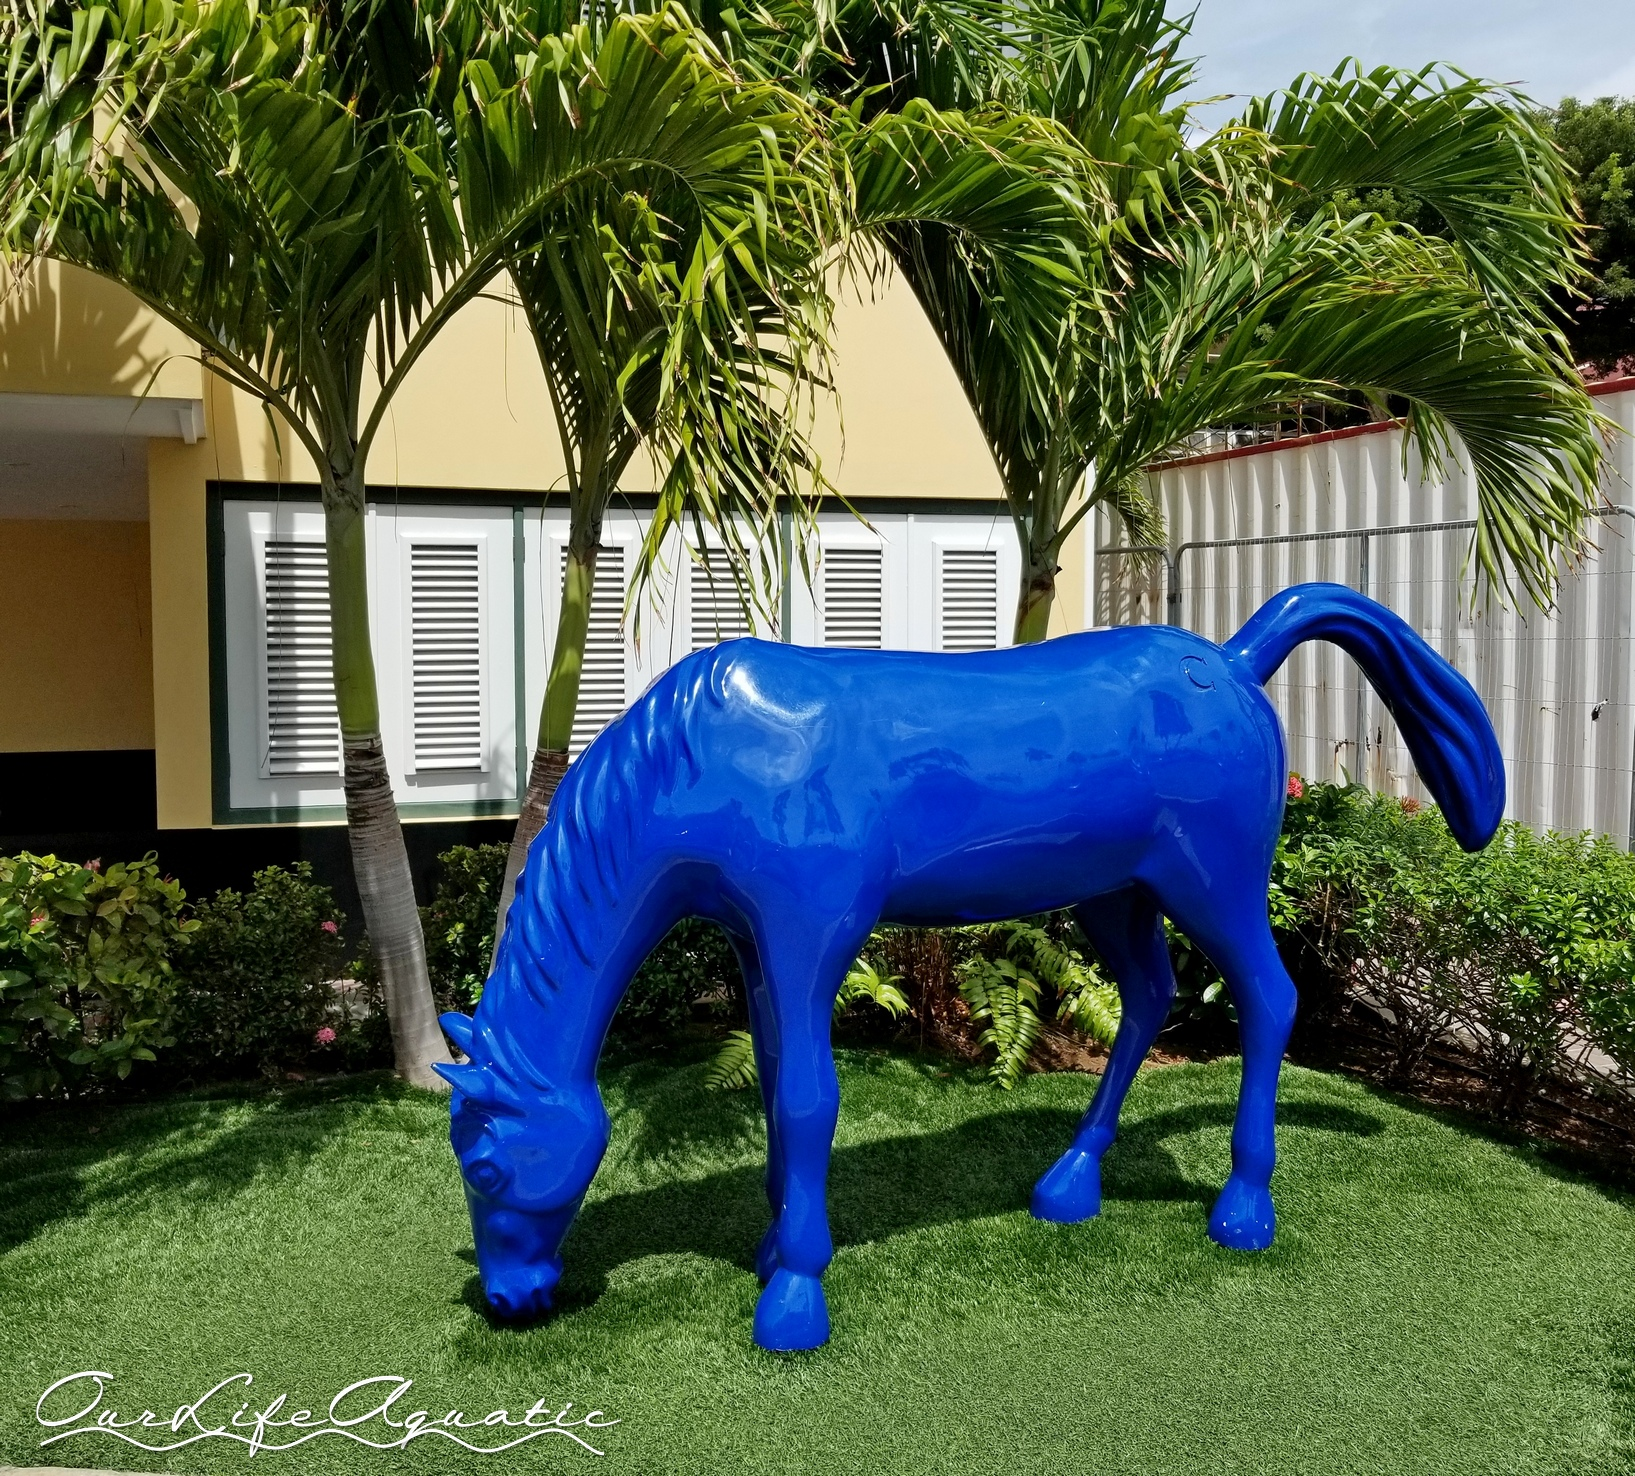 Blue horses are all over downtown Oranjestad